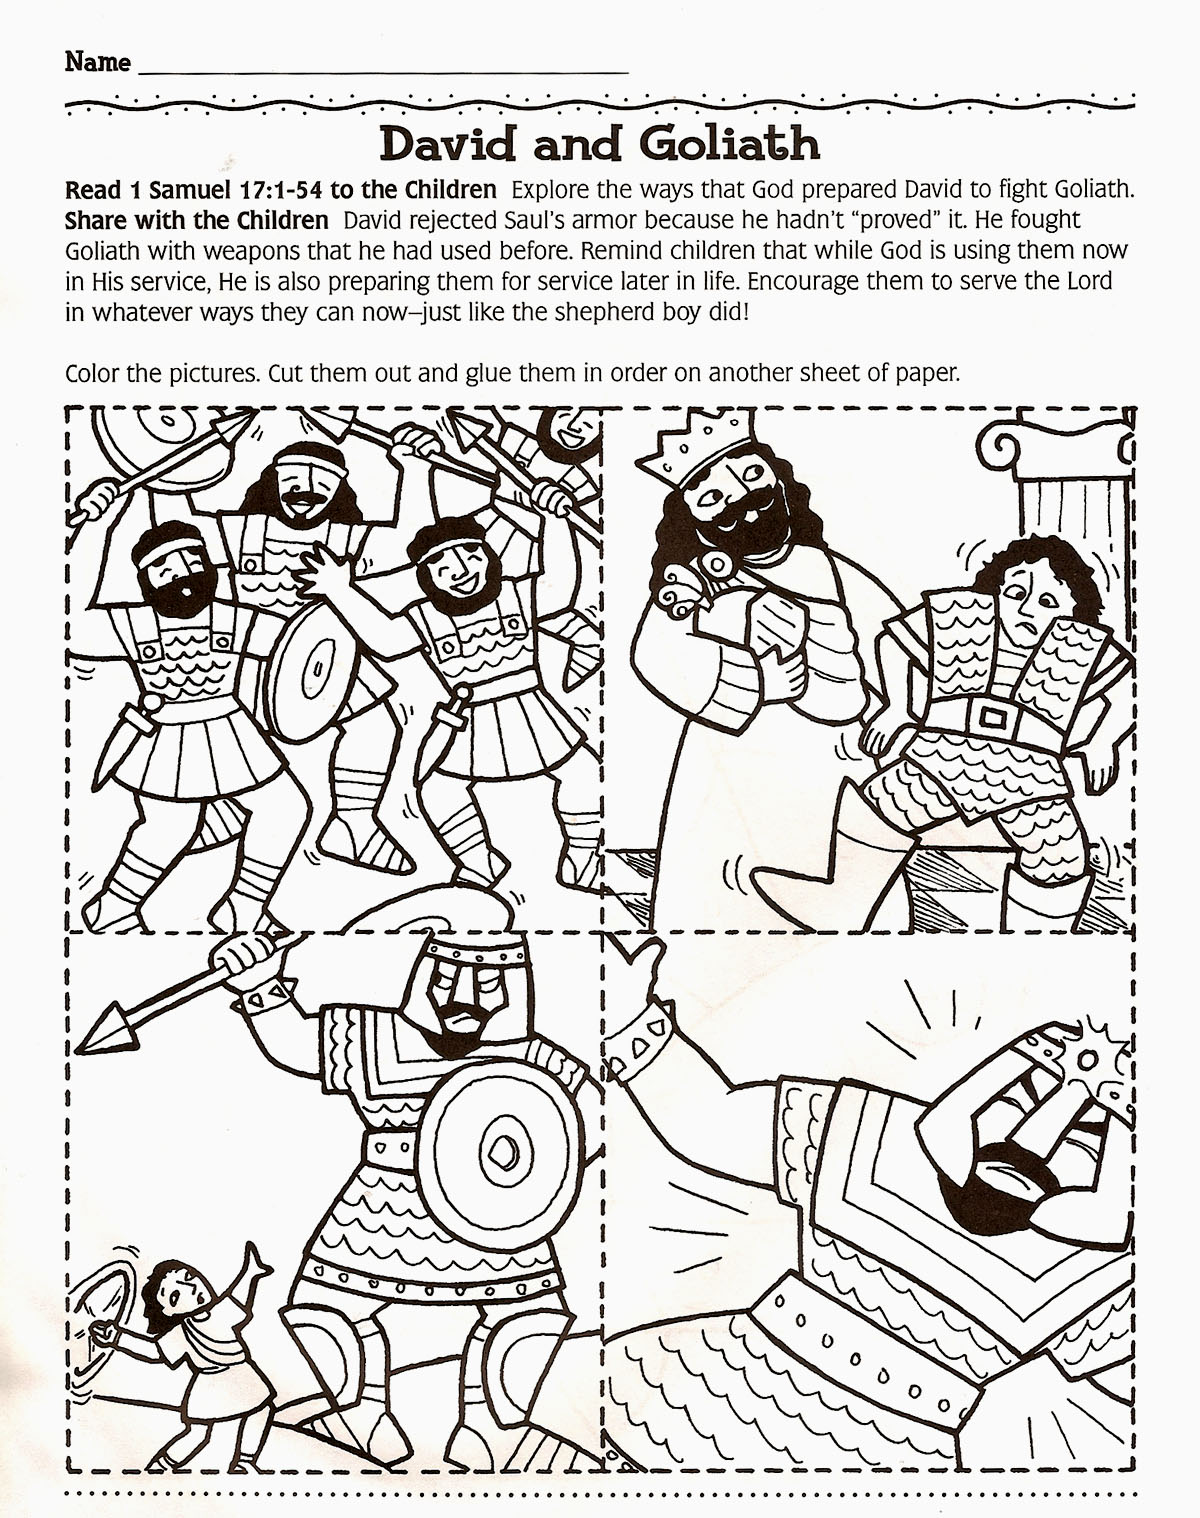 Free coloring pages david and goliath - David And Goliath Coloring Page Lds Primary Pinterest Sunday School Bible And School